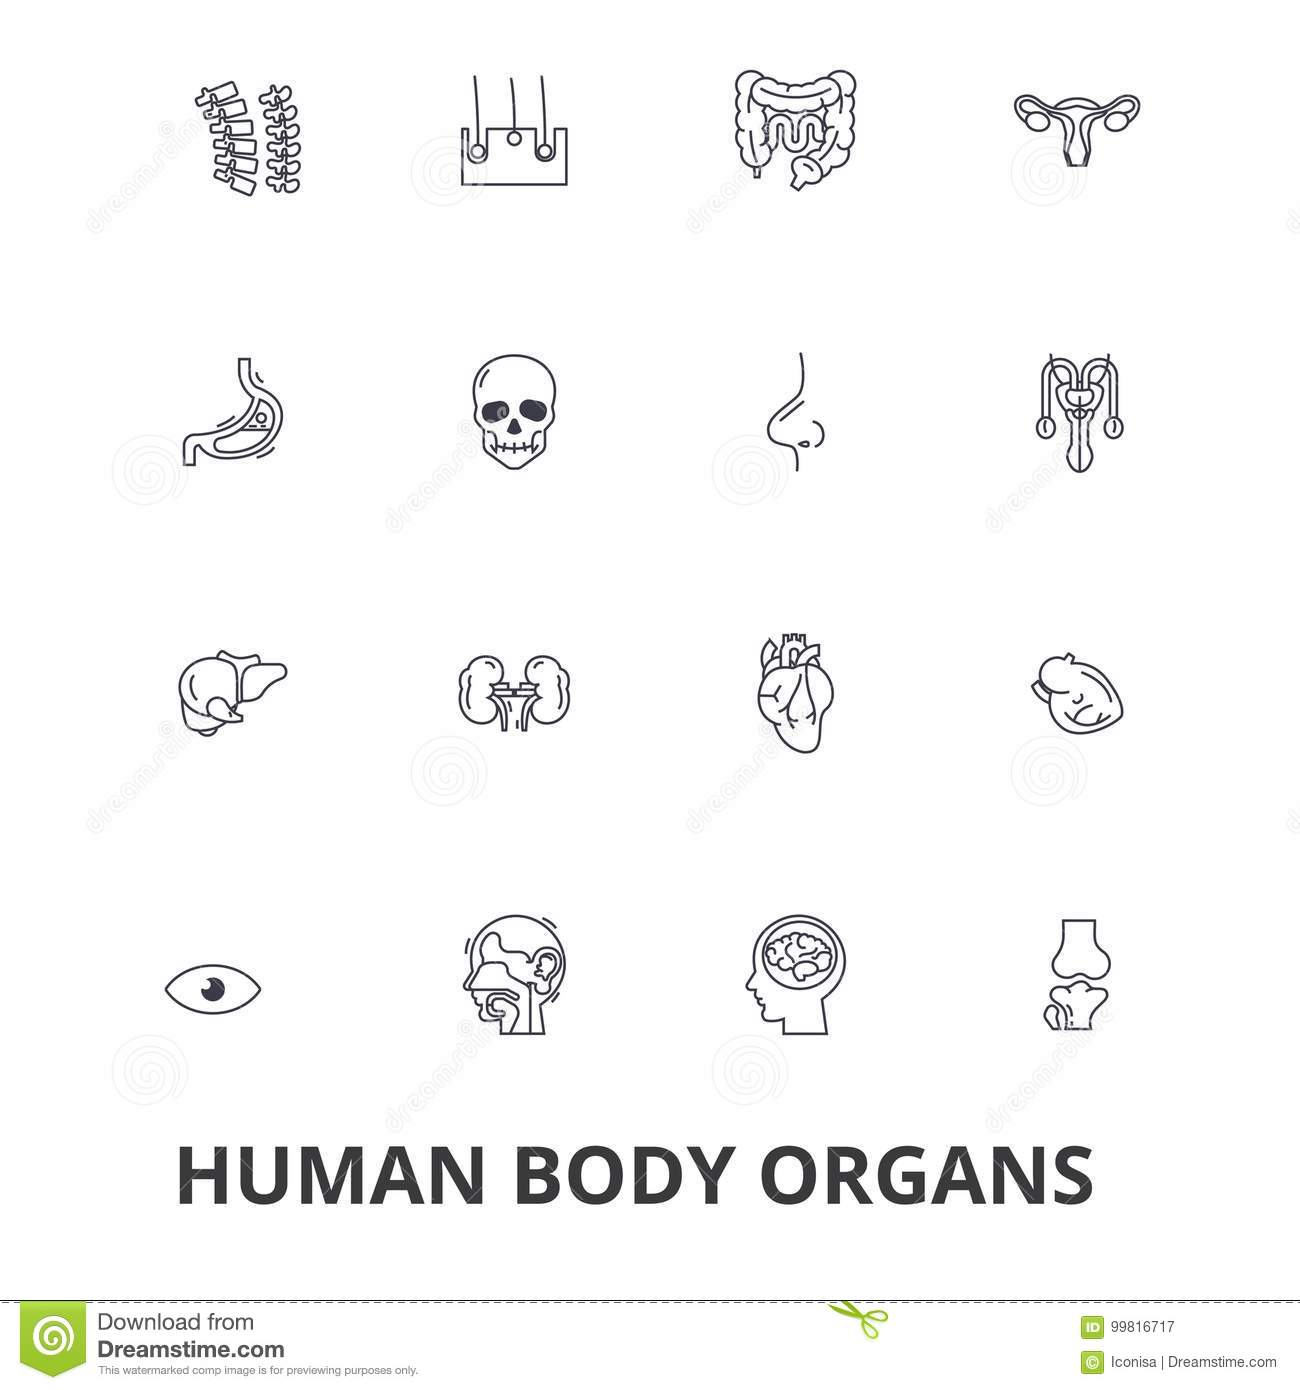 Human Body Organs, Human Body, Medical, Human Anatomy, Body System ...